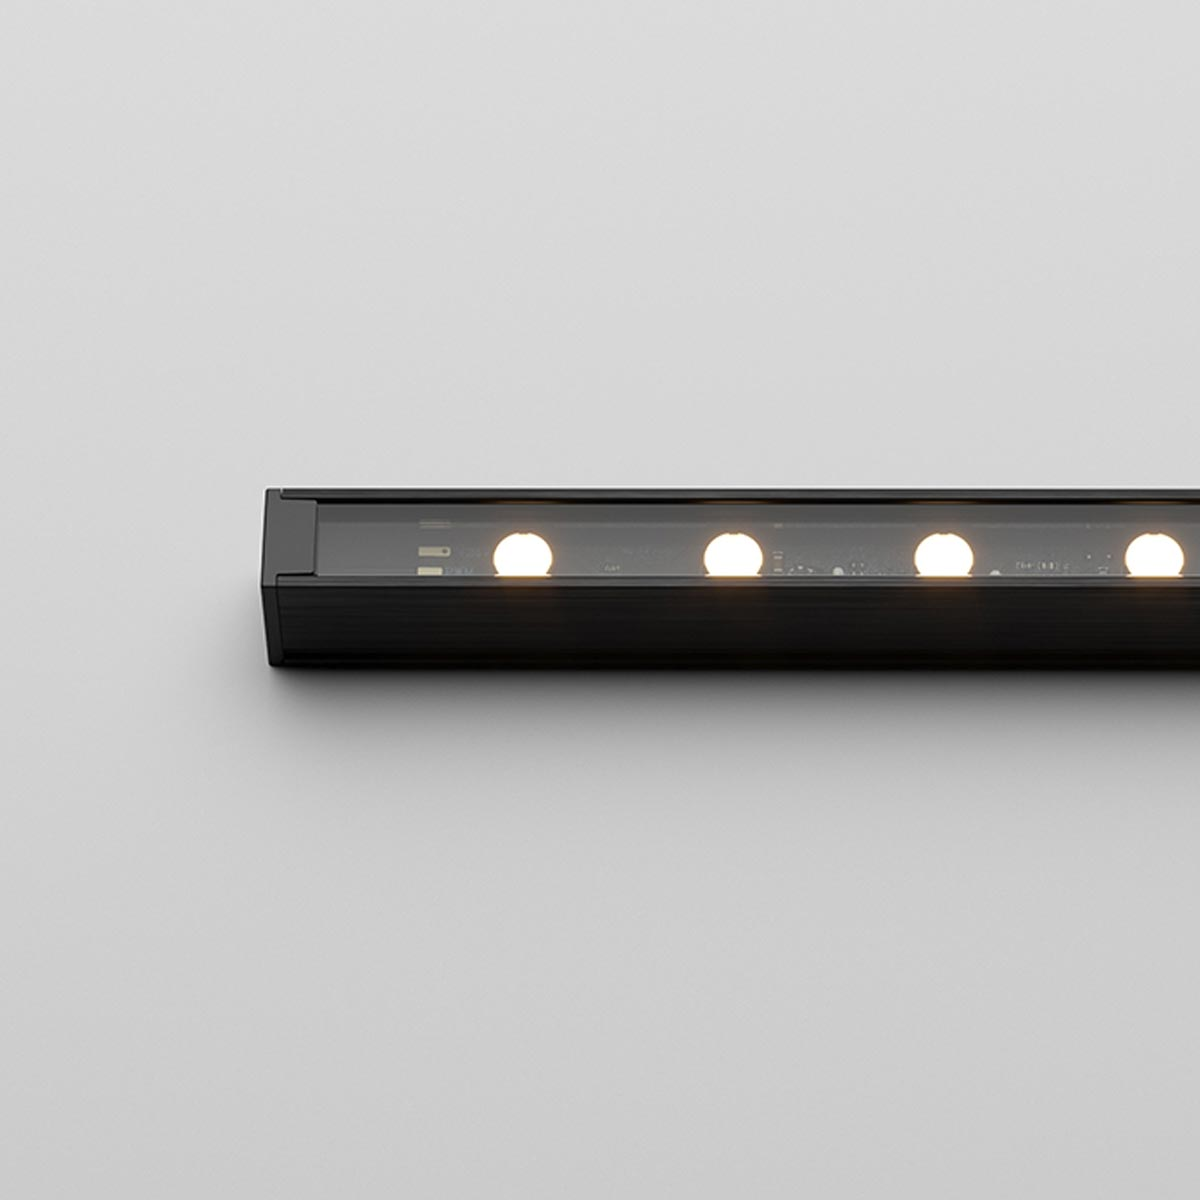 Ratio C IP - Compact Exterior Linear Luminaire with Optical Control and Colour Output Options (11W or 23W)